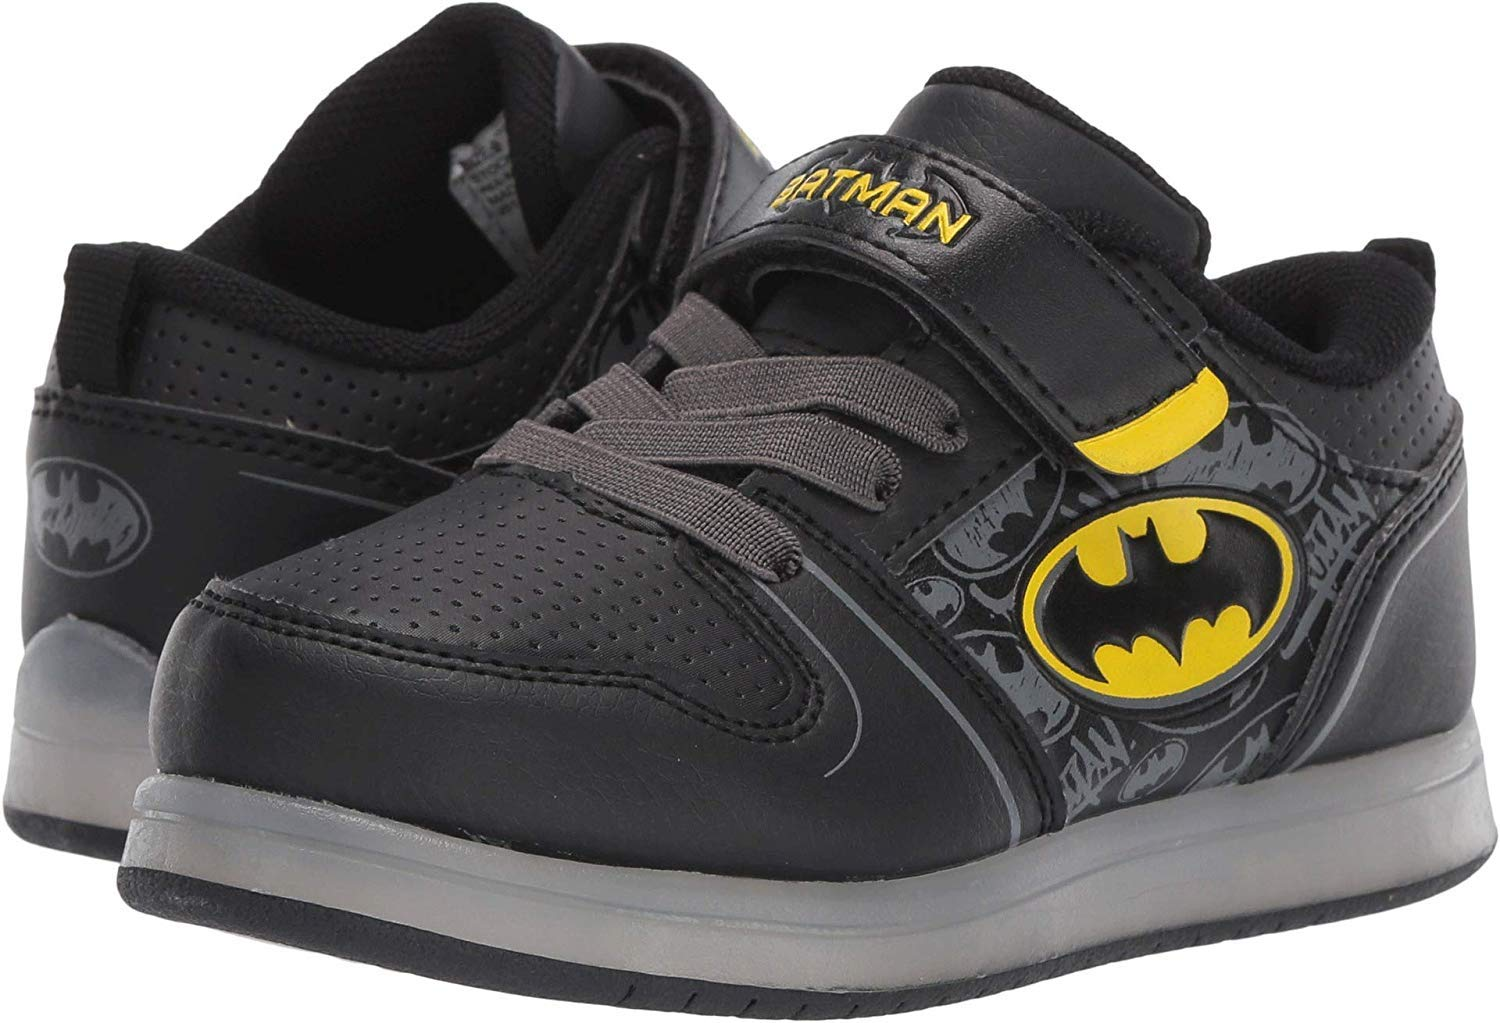 Favorite Characters Boys DC Batman Motion Lighted Sneaker (Toddler/Little Kid), Size 11 Black